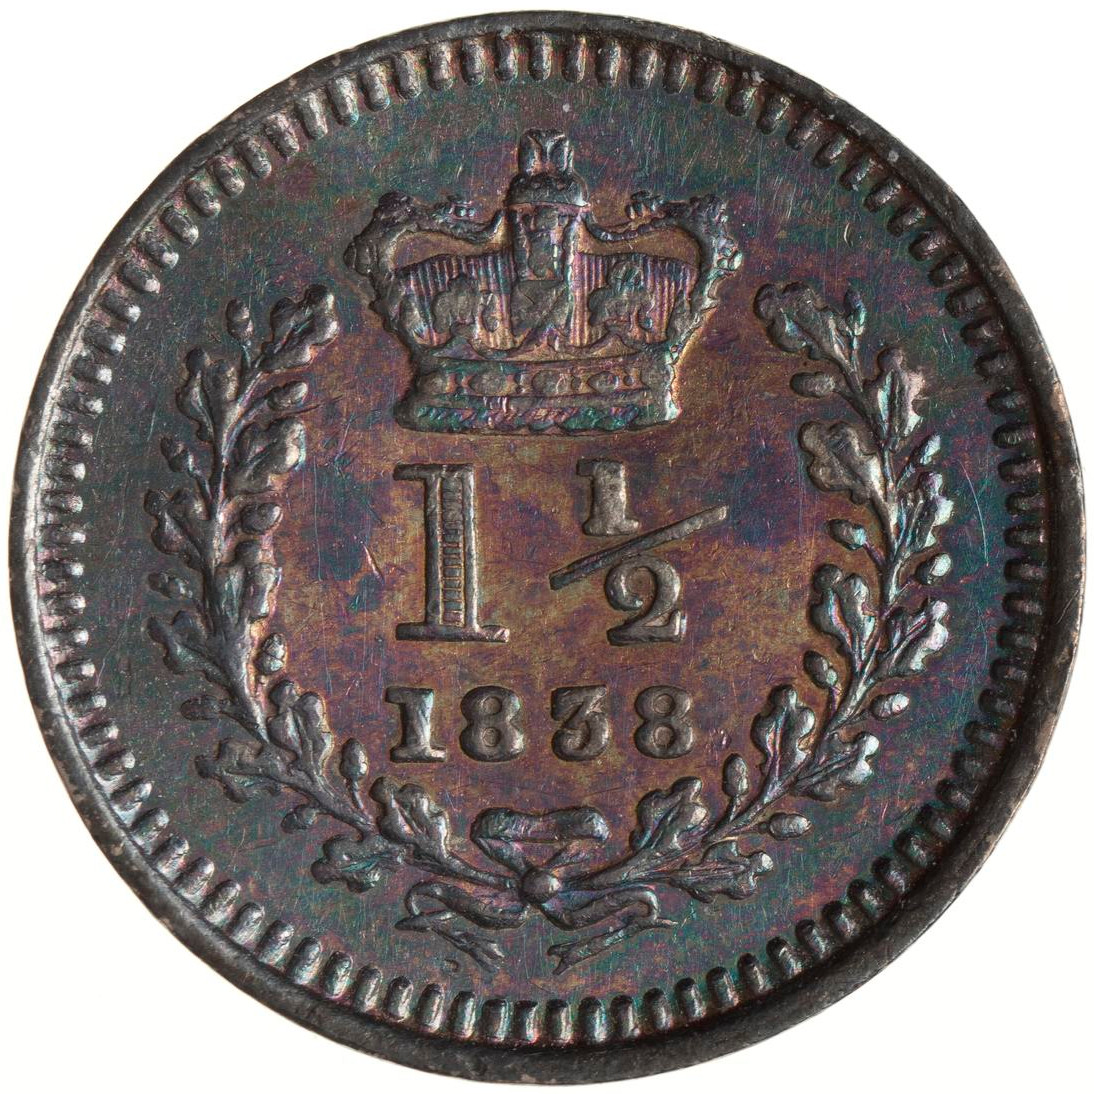 Three Halfpence: Photo Coin - 3 Halfpence, Jamaica, 1838